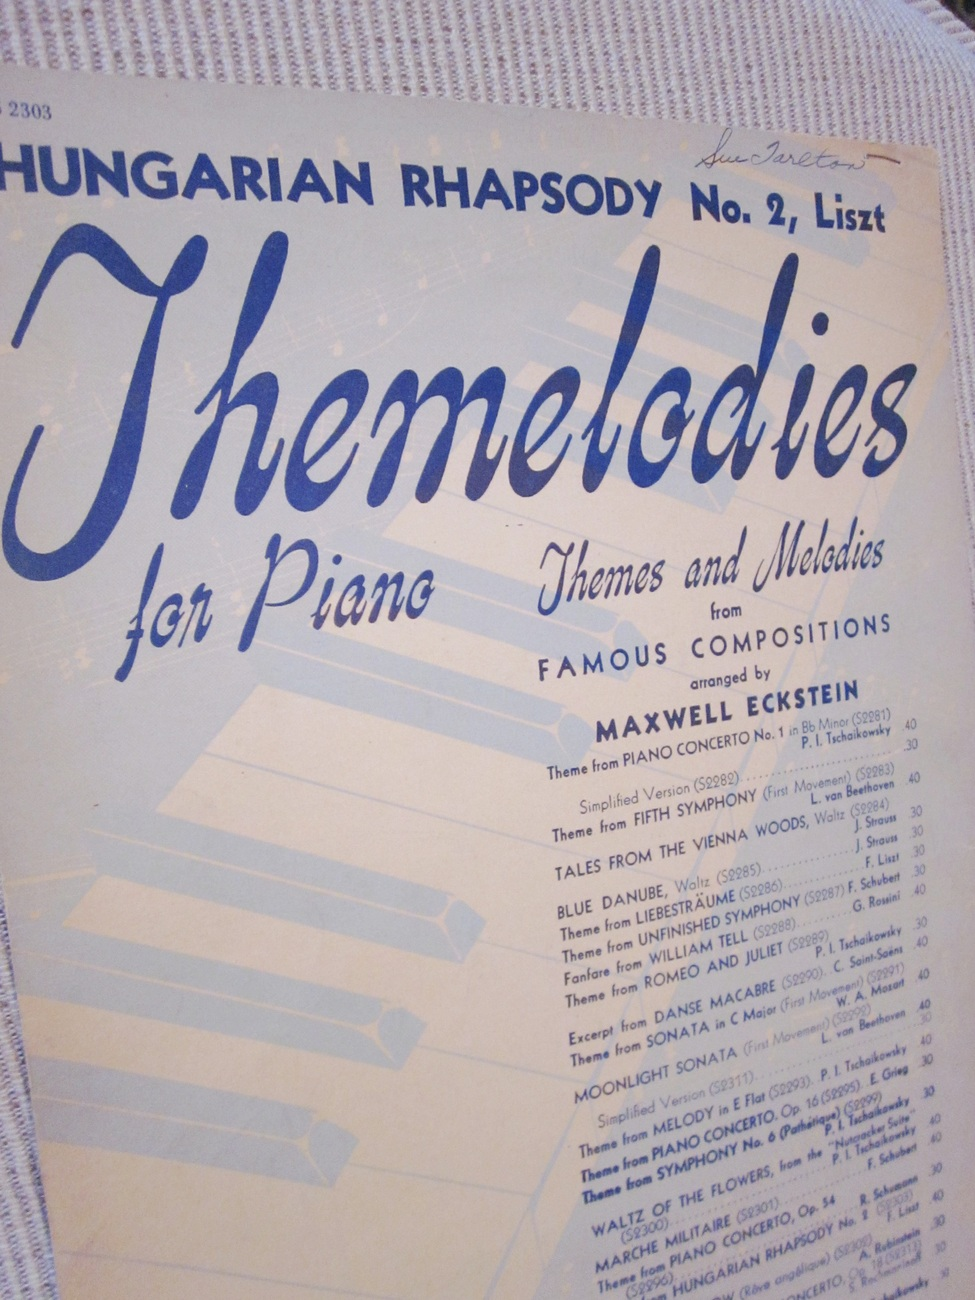 Vintage Sheet Music Hungarian Rhapsody No. 2 - Liszt 1942 - Piano